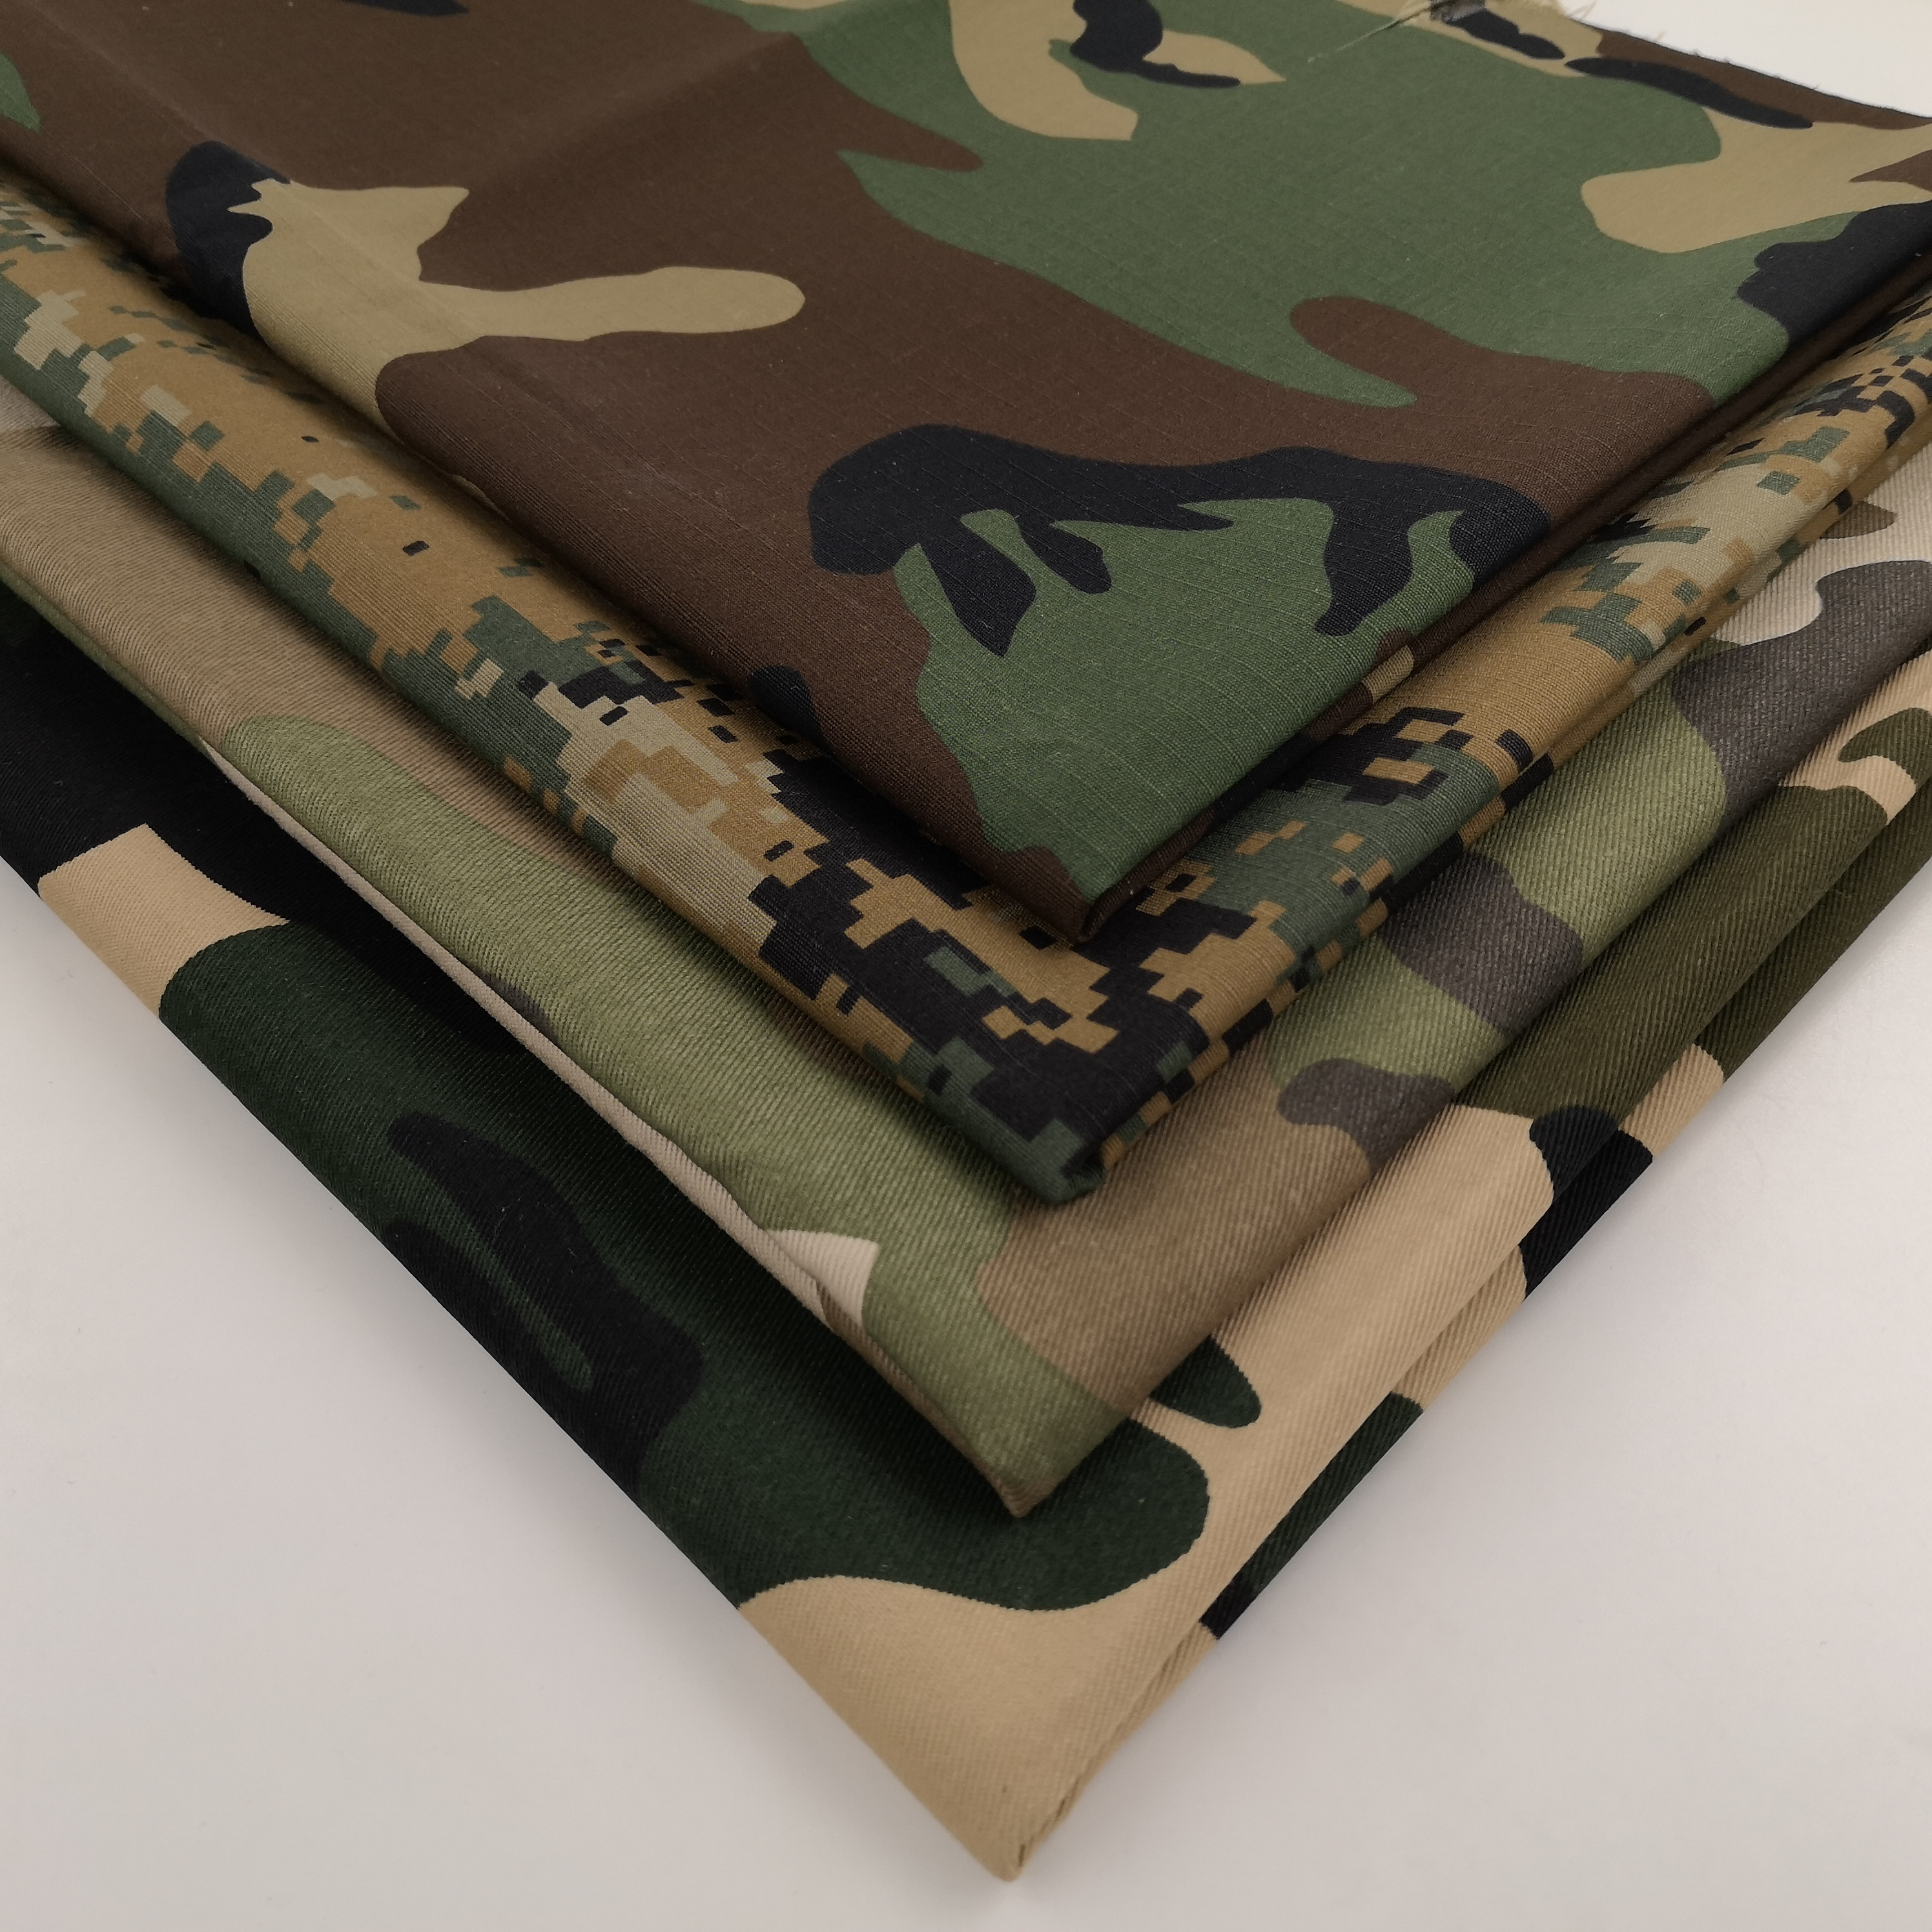 65% polyeste/ 35% cotton twill camouflage 200-250gsm weight waterproof for army garments